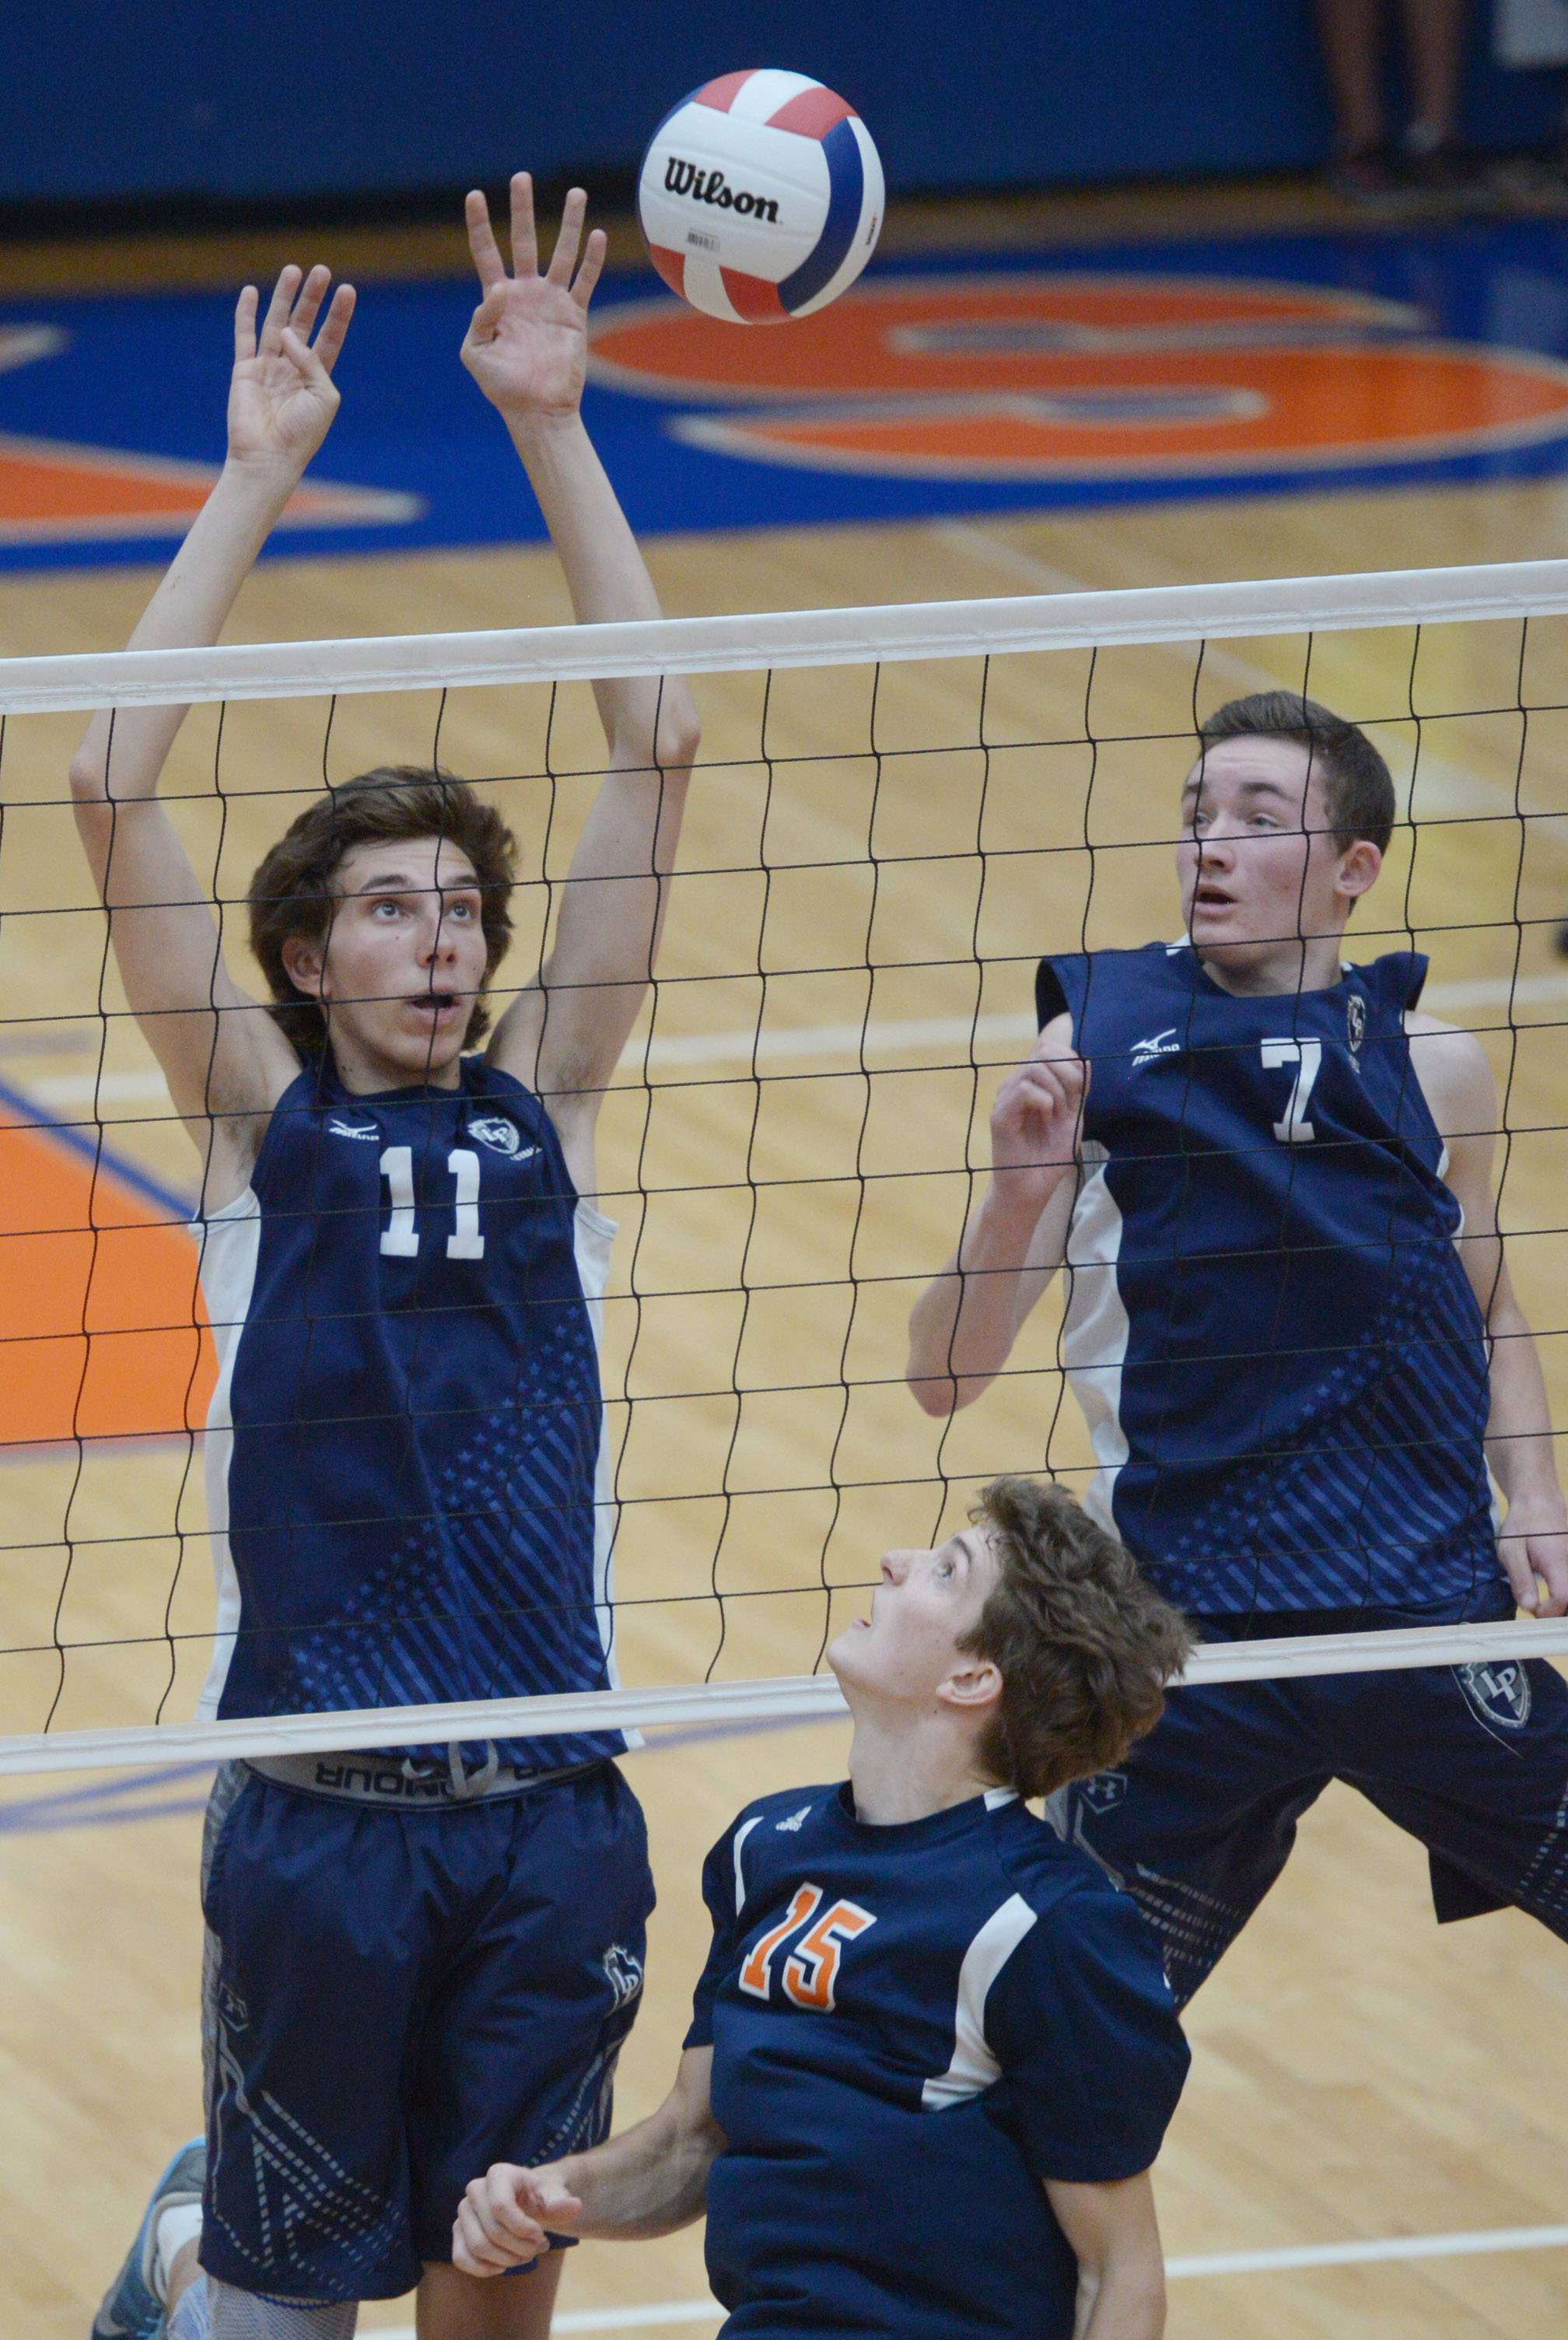 Lake Park's Nick Martinski, left, and Jack Fischer block a ball hit by Oak Park-River Forest's Ben Hancock (15) during the boys volleyball state quarterfinals at Hoffman Estates High School Friday.